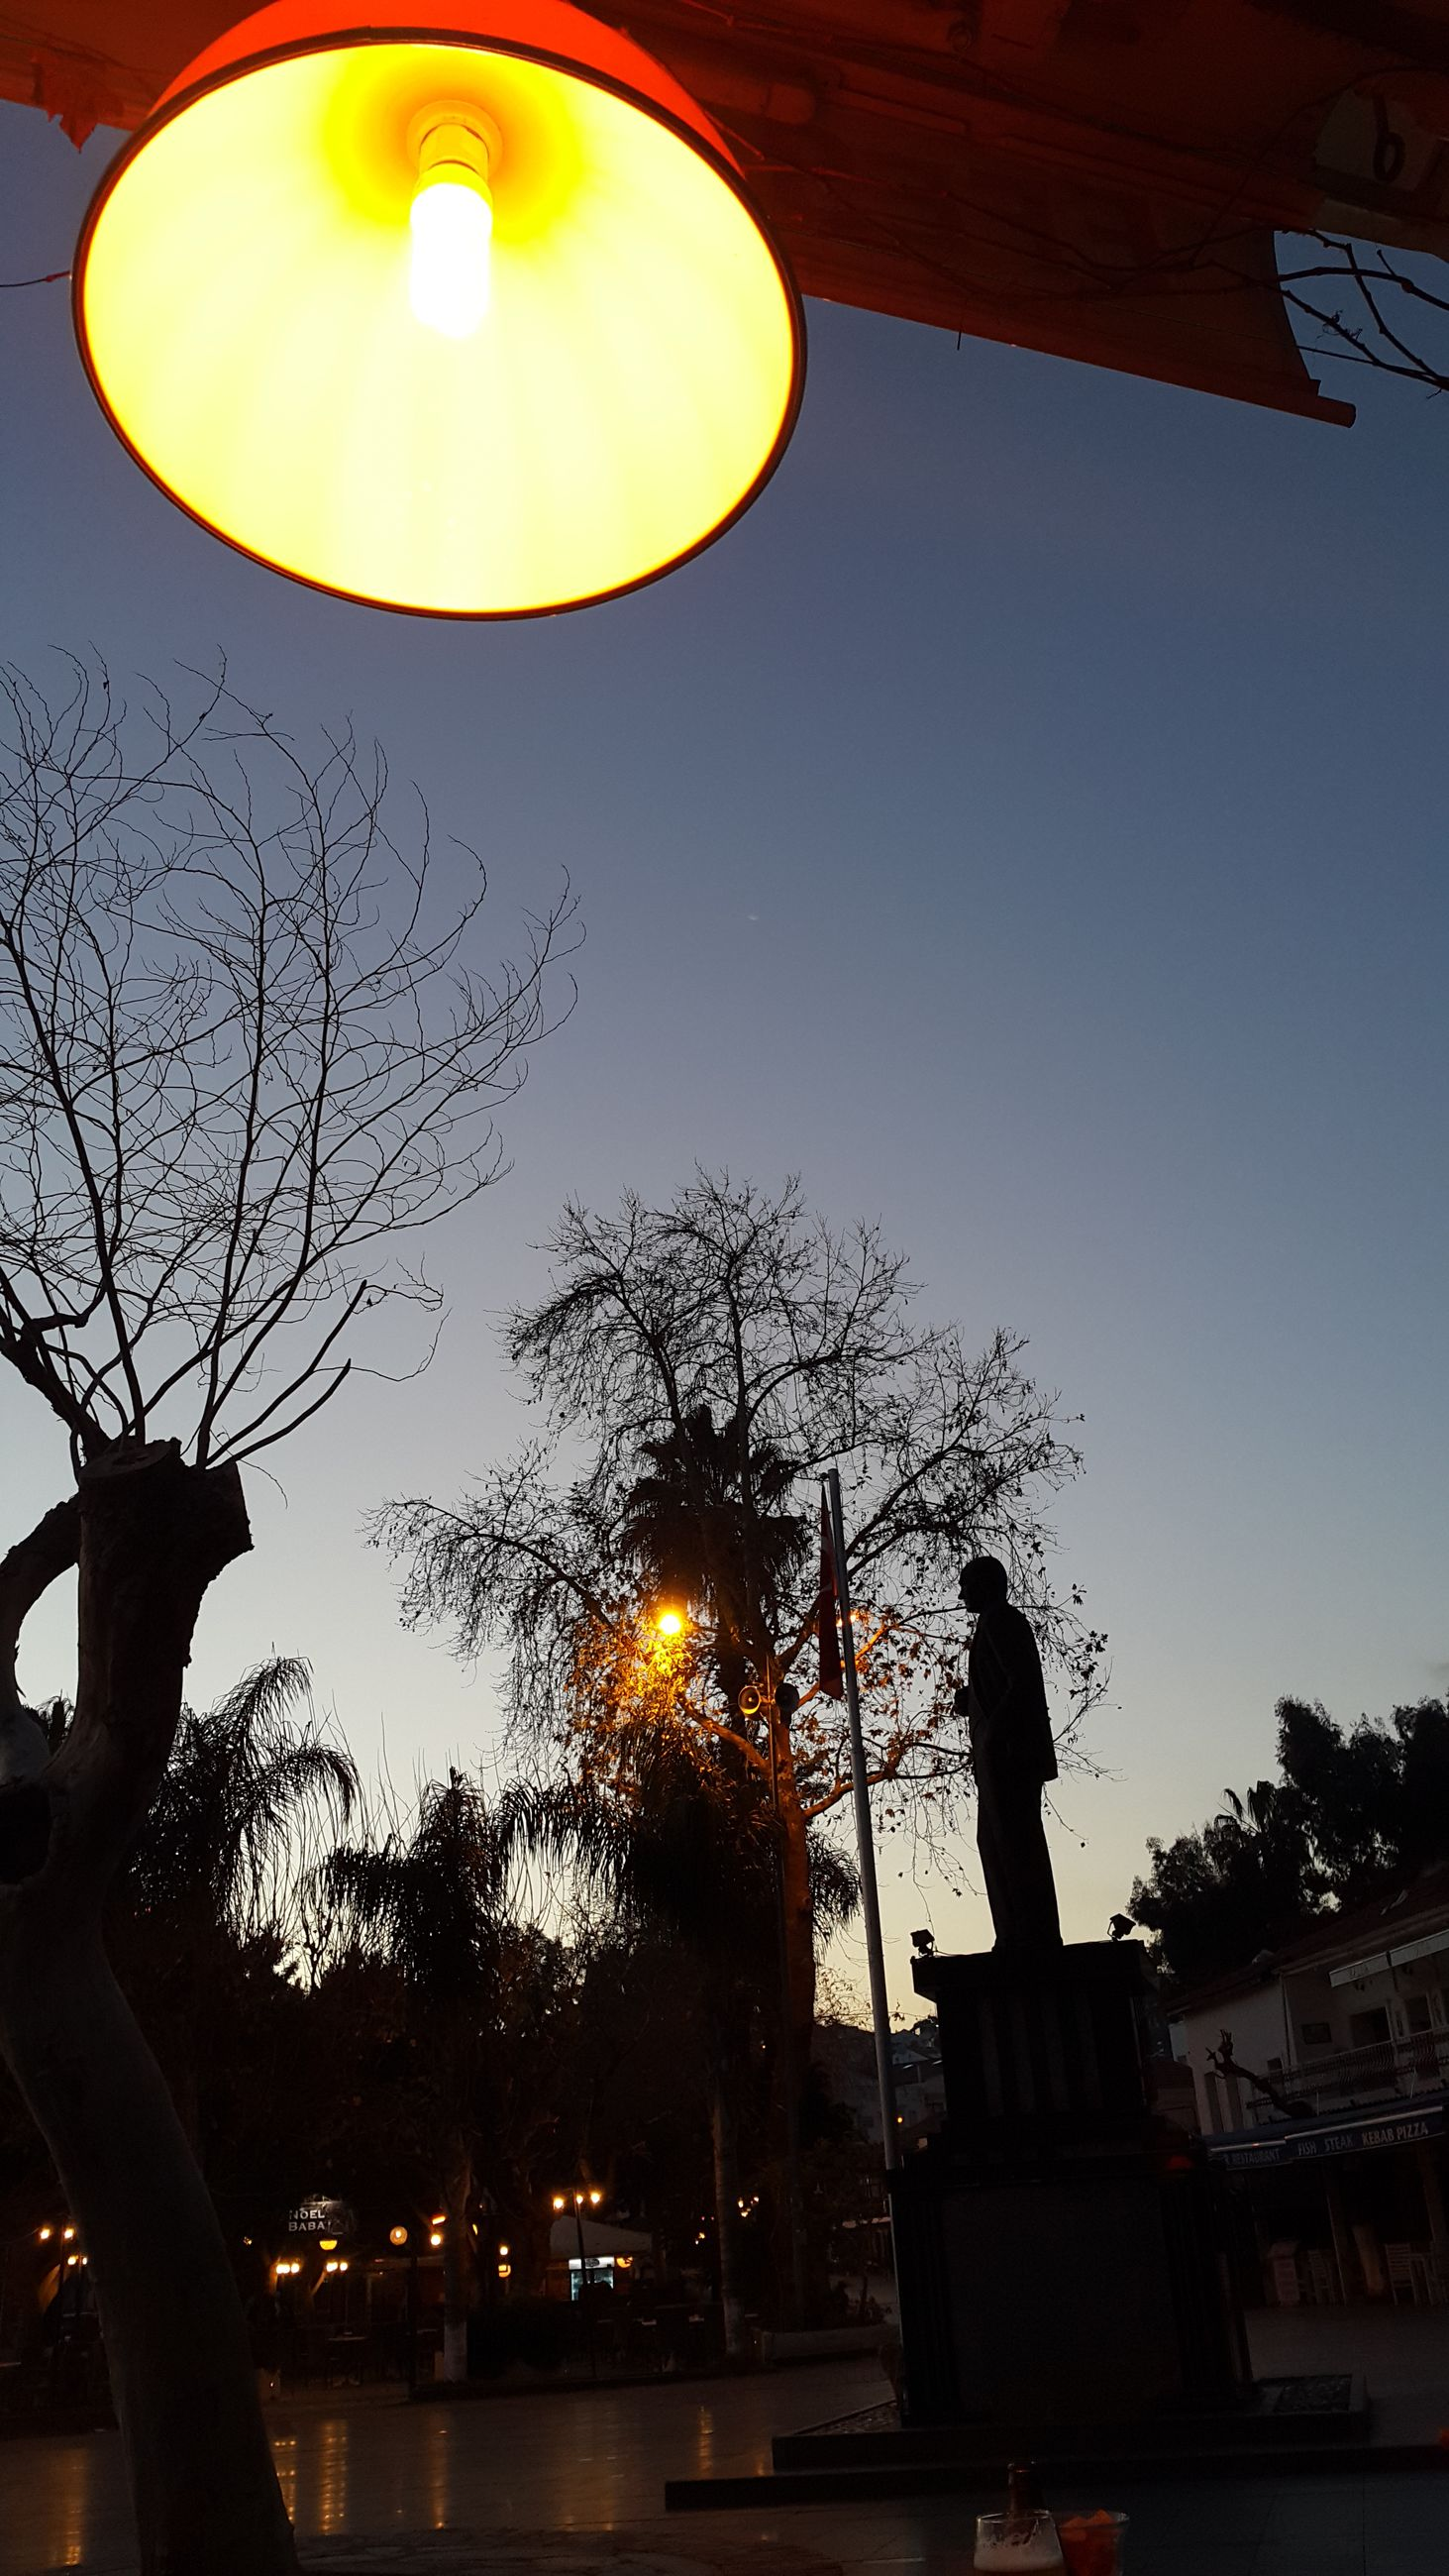 tree, building exterior, low angle view, built structure, architecture, street light, illuminated, clear sky, sunset, lighting equipment, silhouette, sun, city, sky, branch, growth, sunlight, outdoors, glowing, night